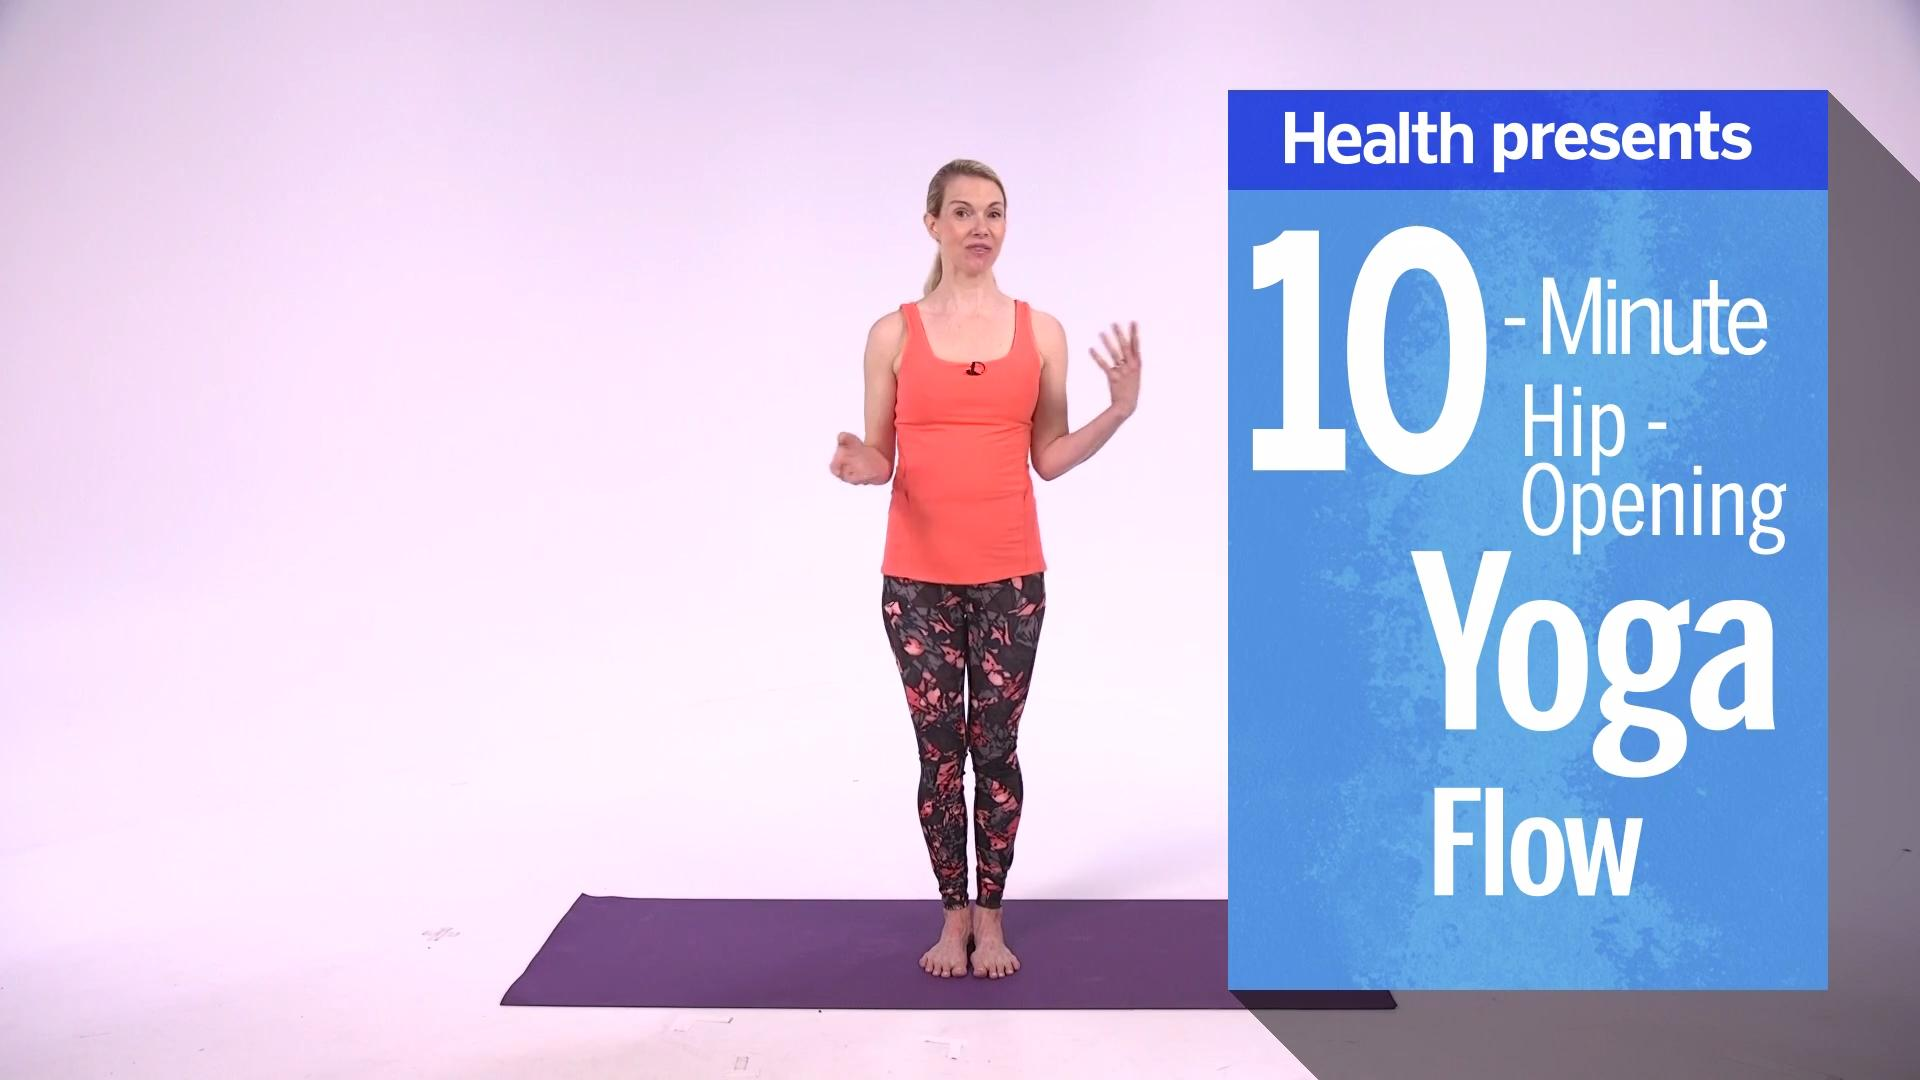 10-Minute Hip-Opening Yoga Flow